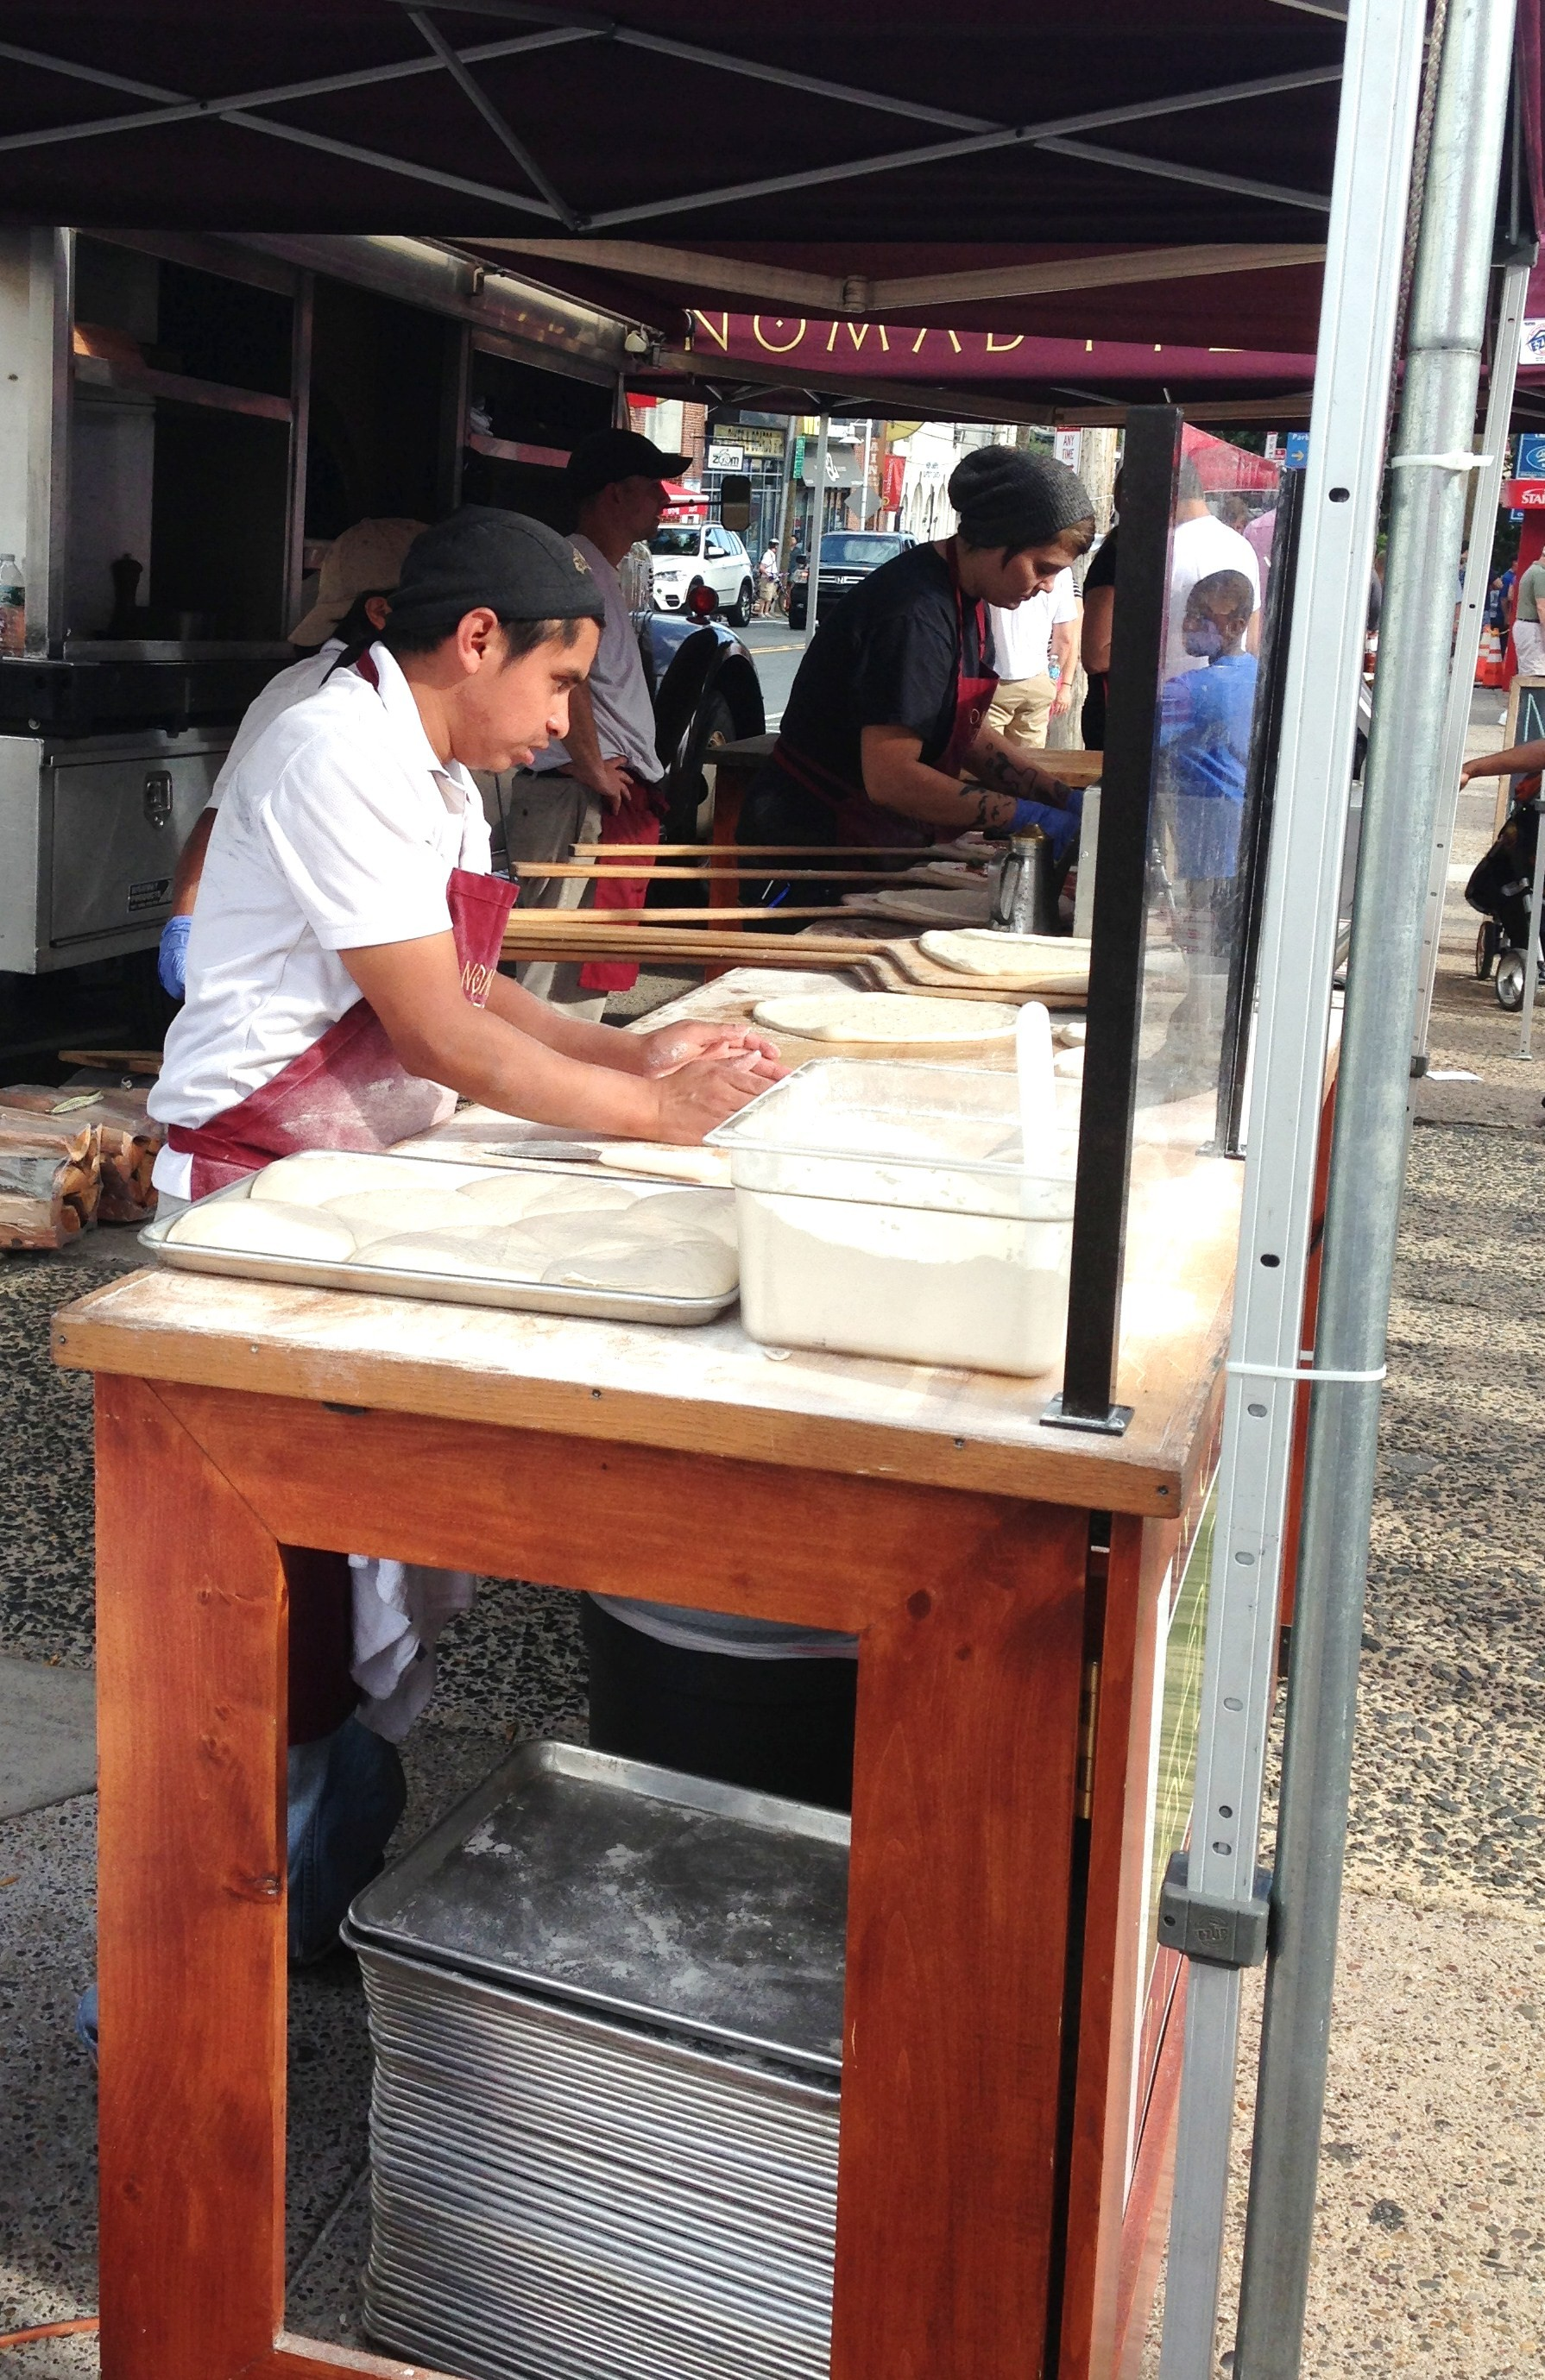 Nomad's Pizza made fresh pizza at Manayunk's Streat Food Festival.